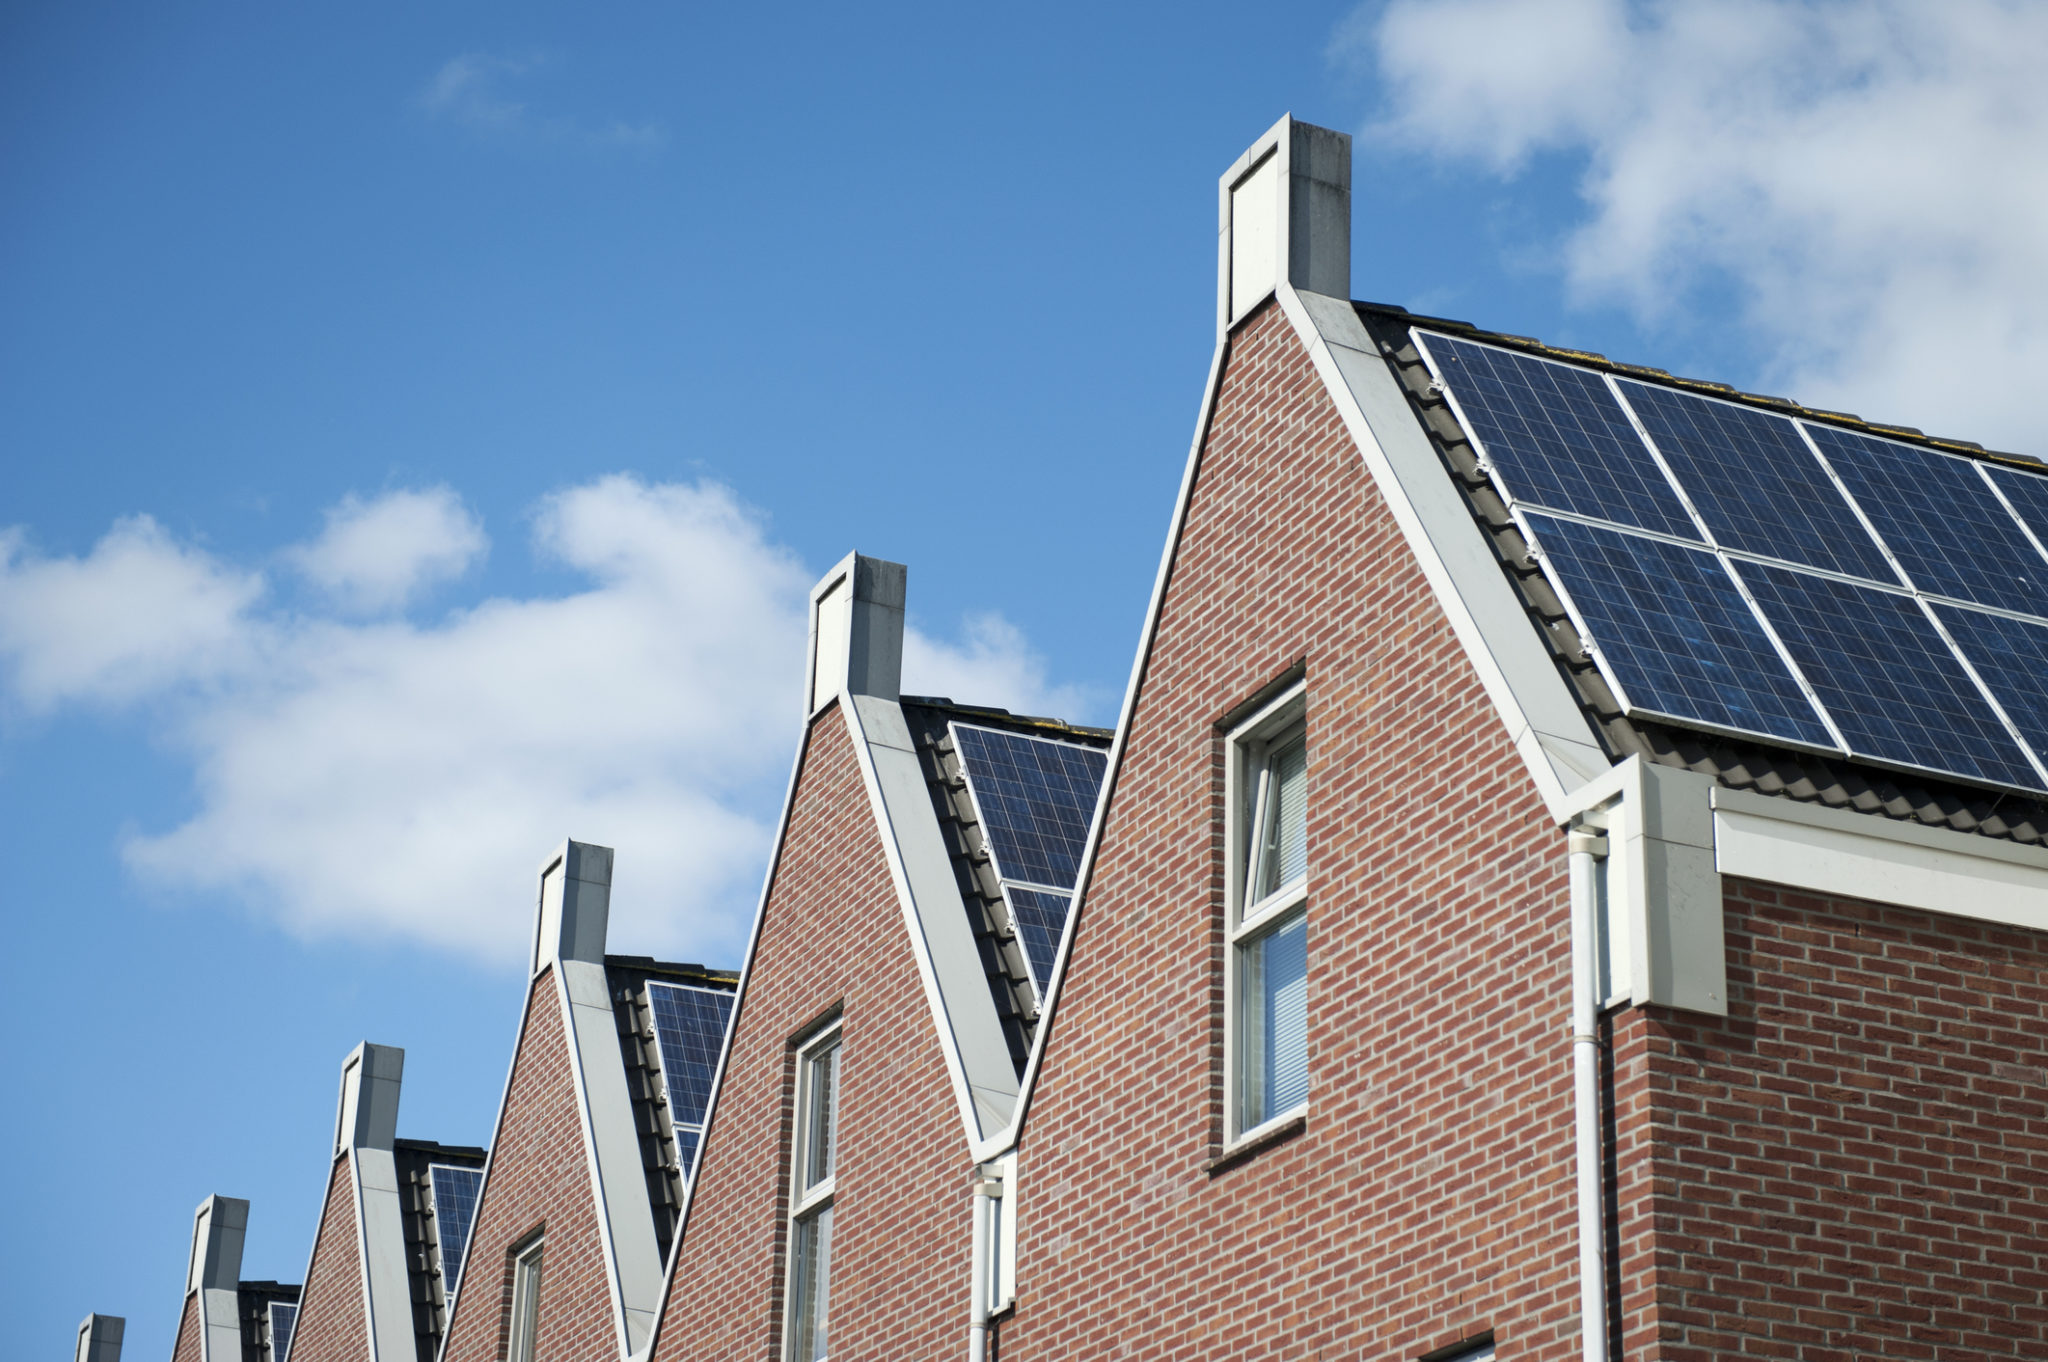 Majority of the UK Public Demands Solar Energy, says YouGov Survey